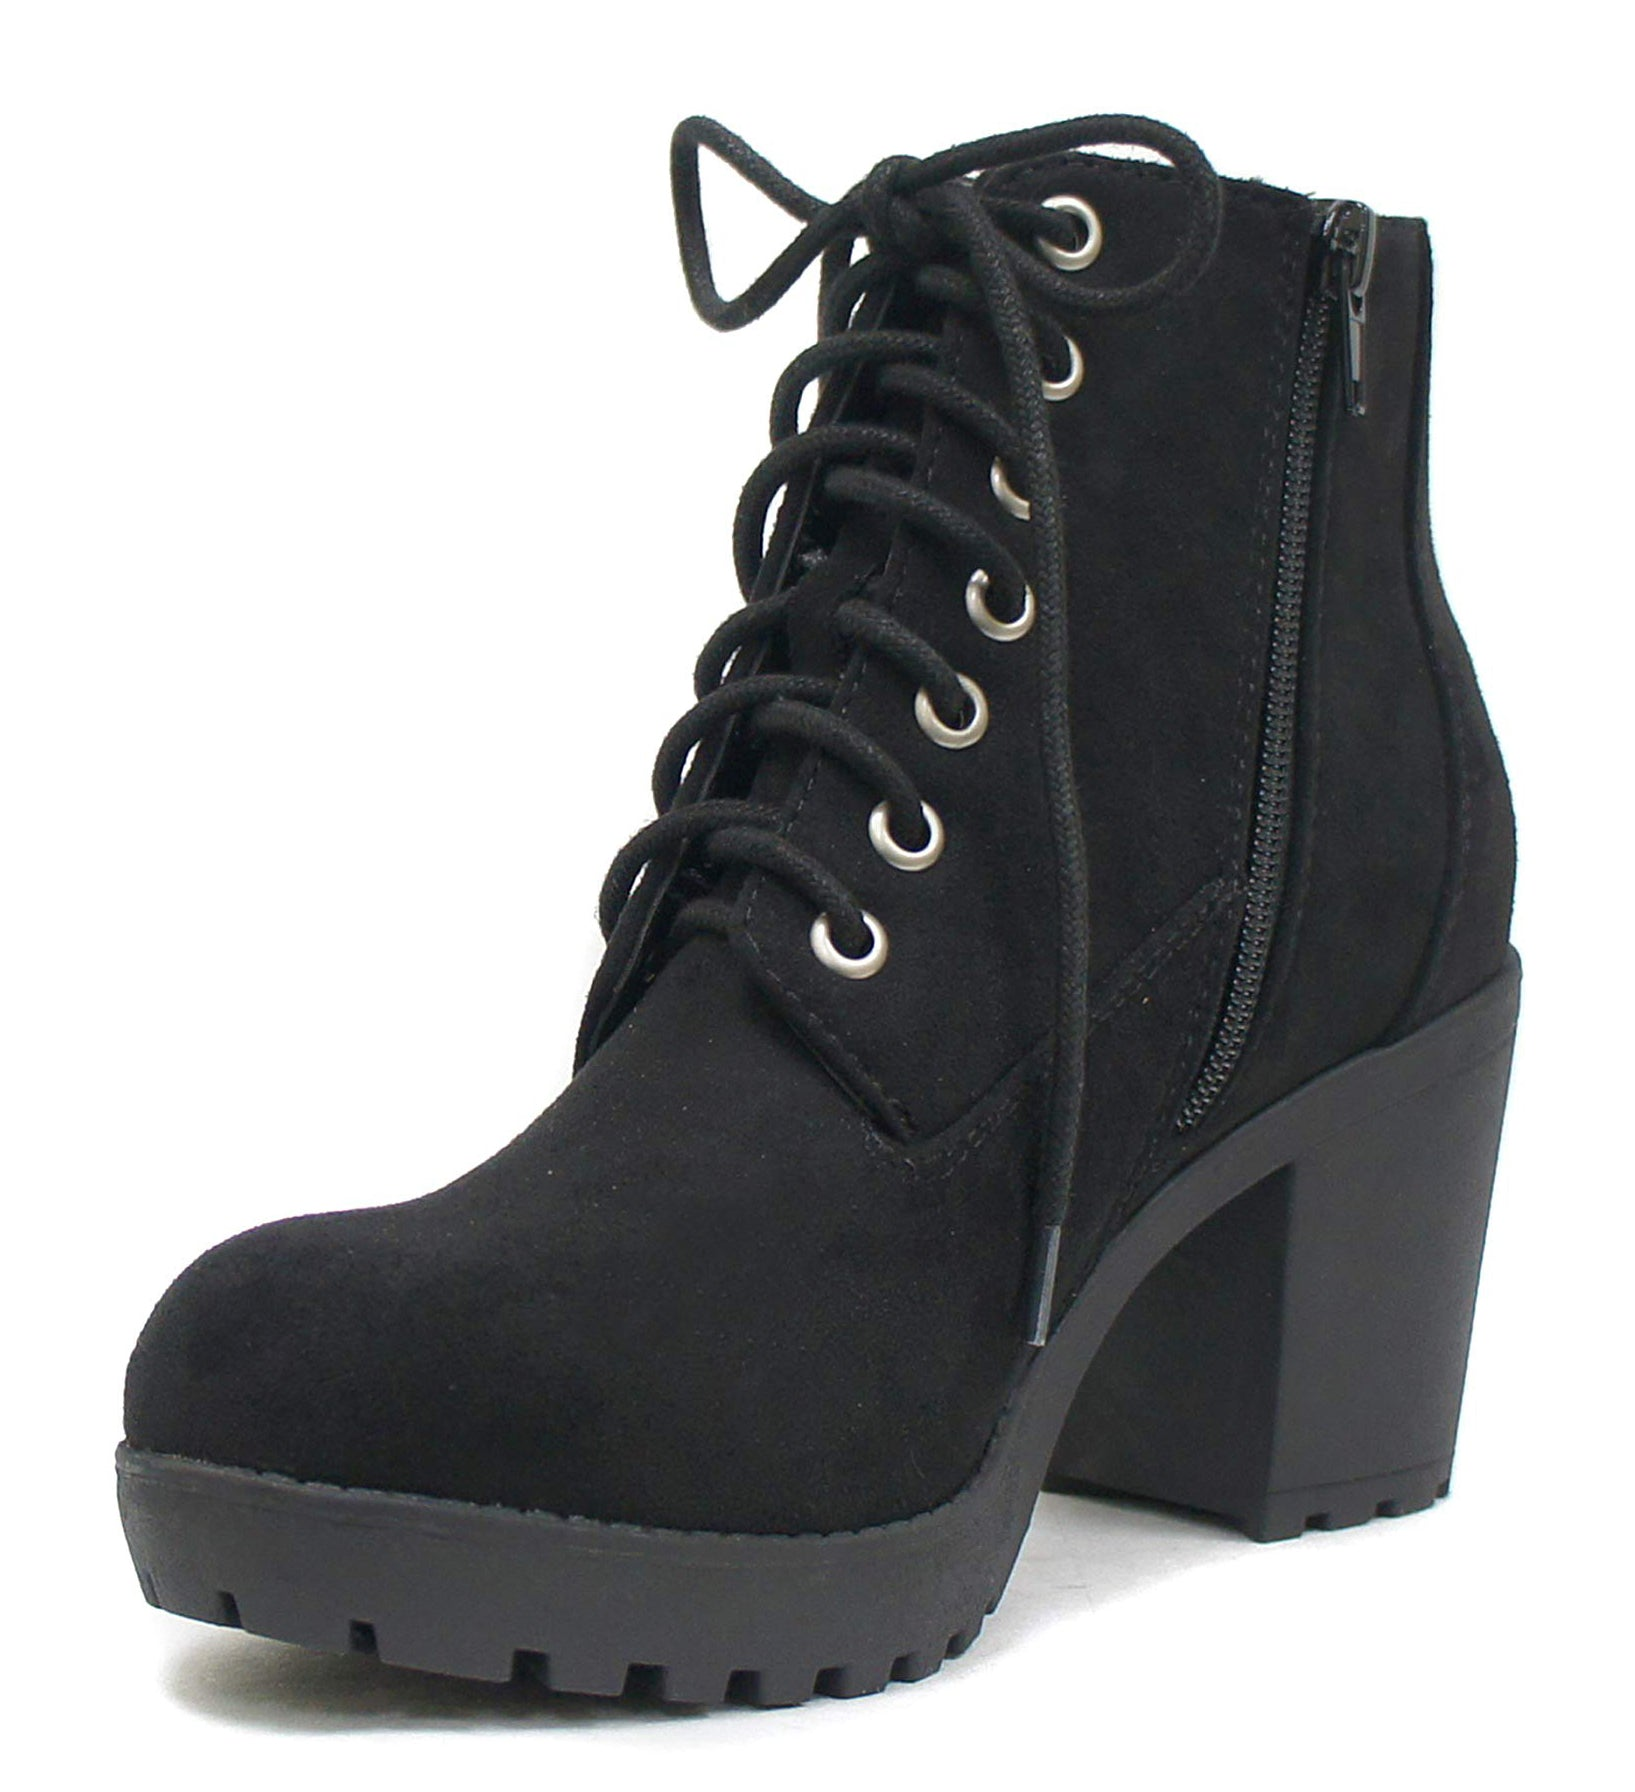 SECOND-S Black Suede Soda